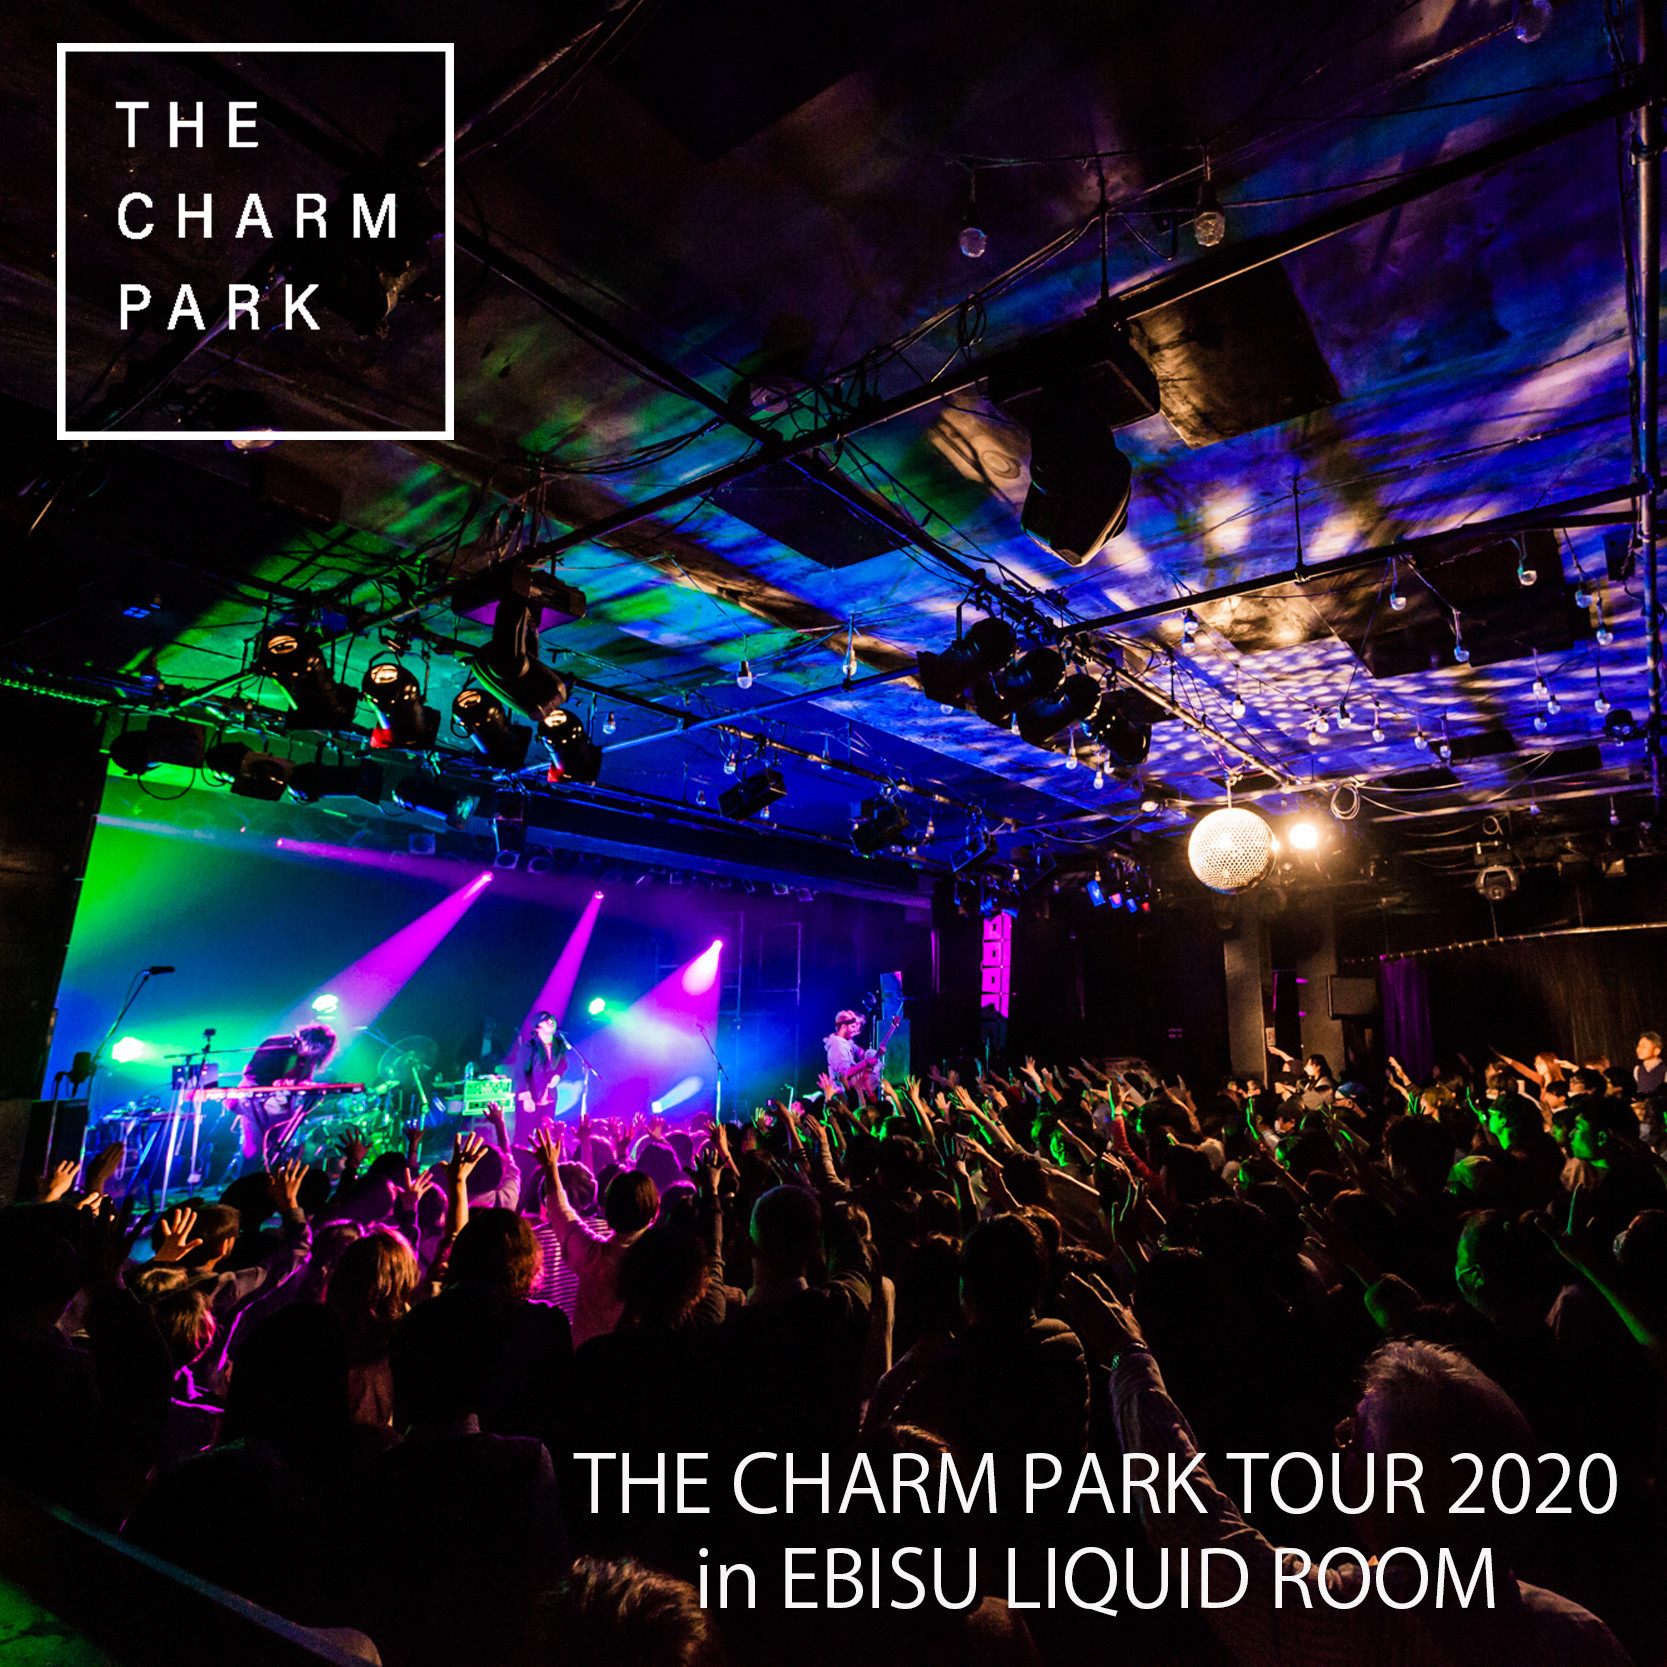 『THE CHARM PARK TOUR 2020 Set List』